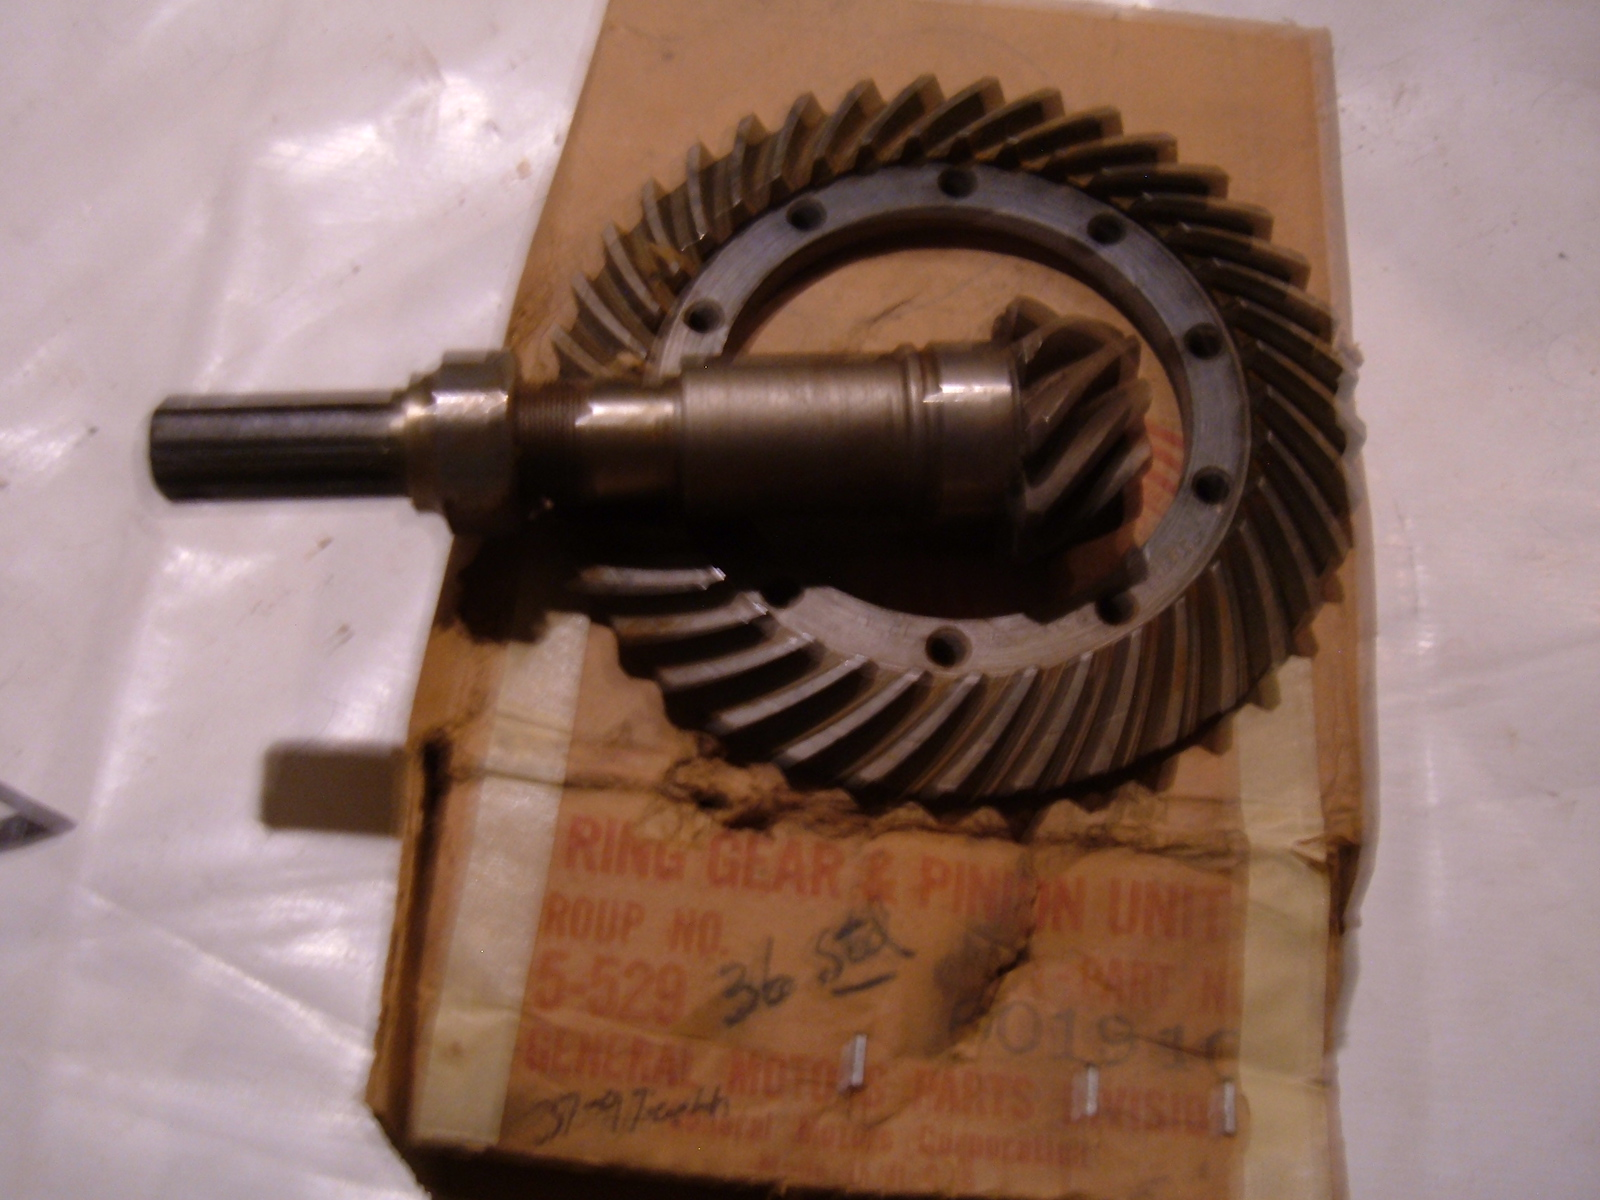 1936 chevrolet master ring & pinion gear set # 601910 (z 601910)